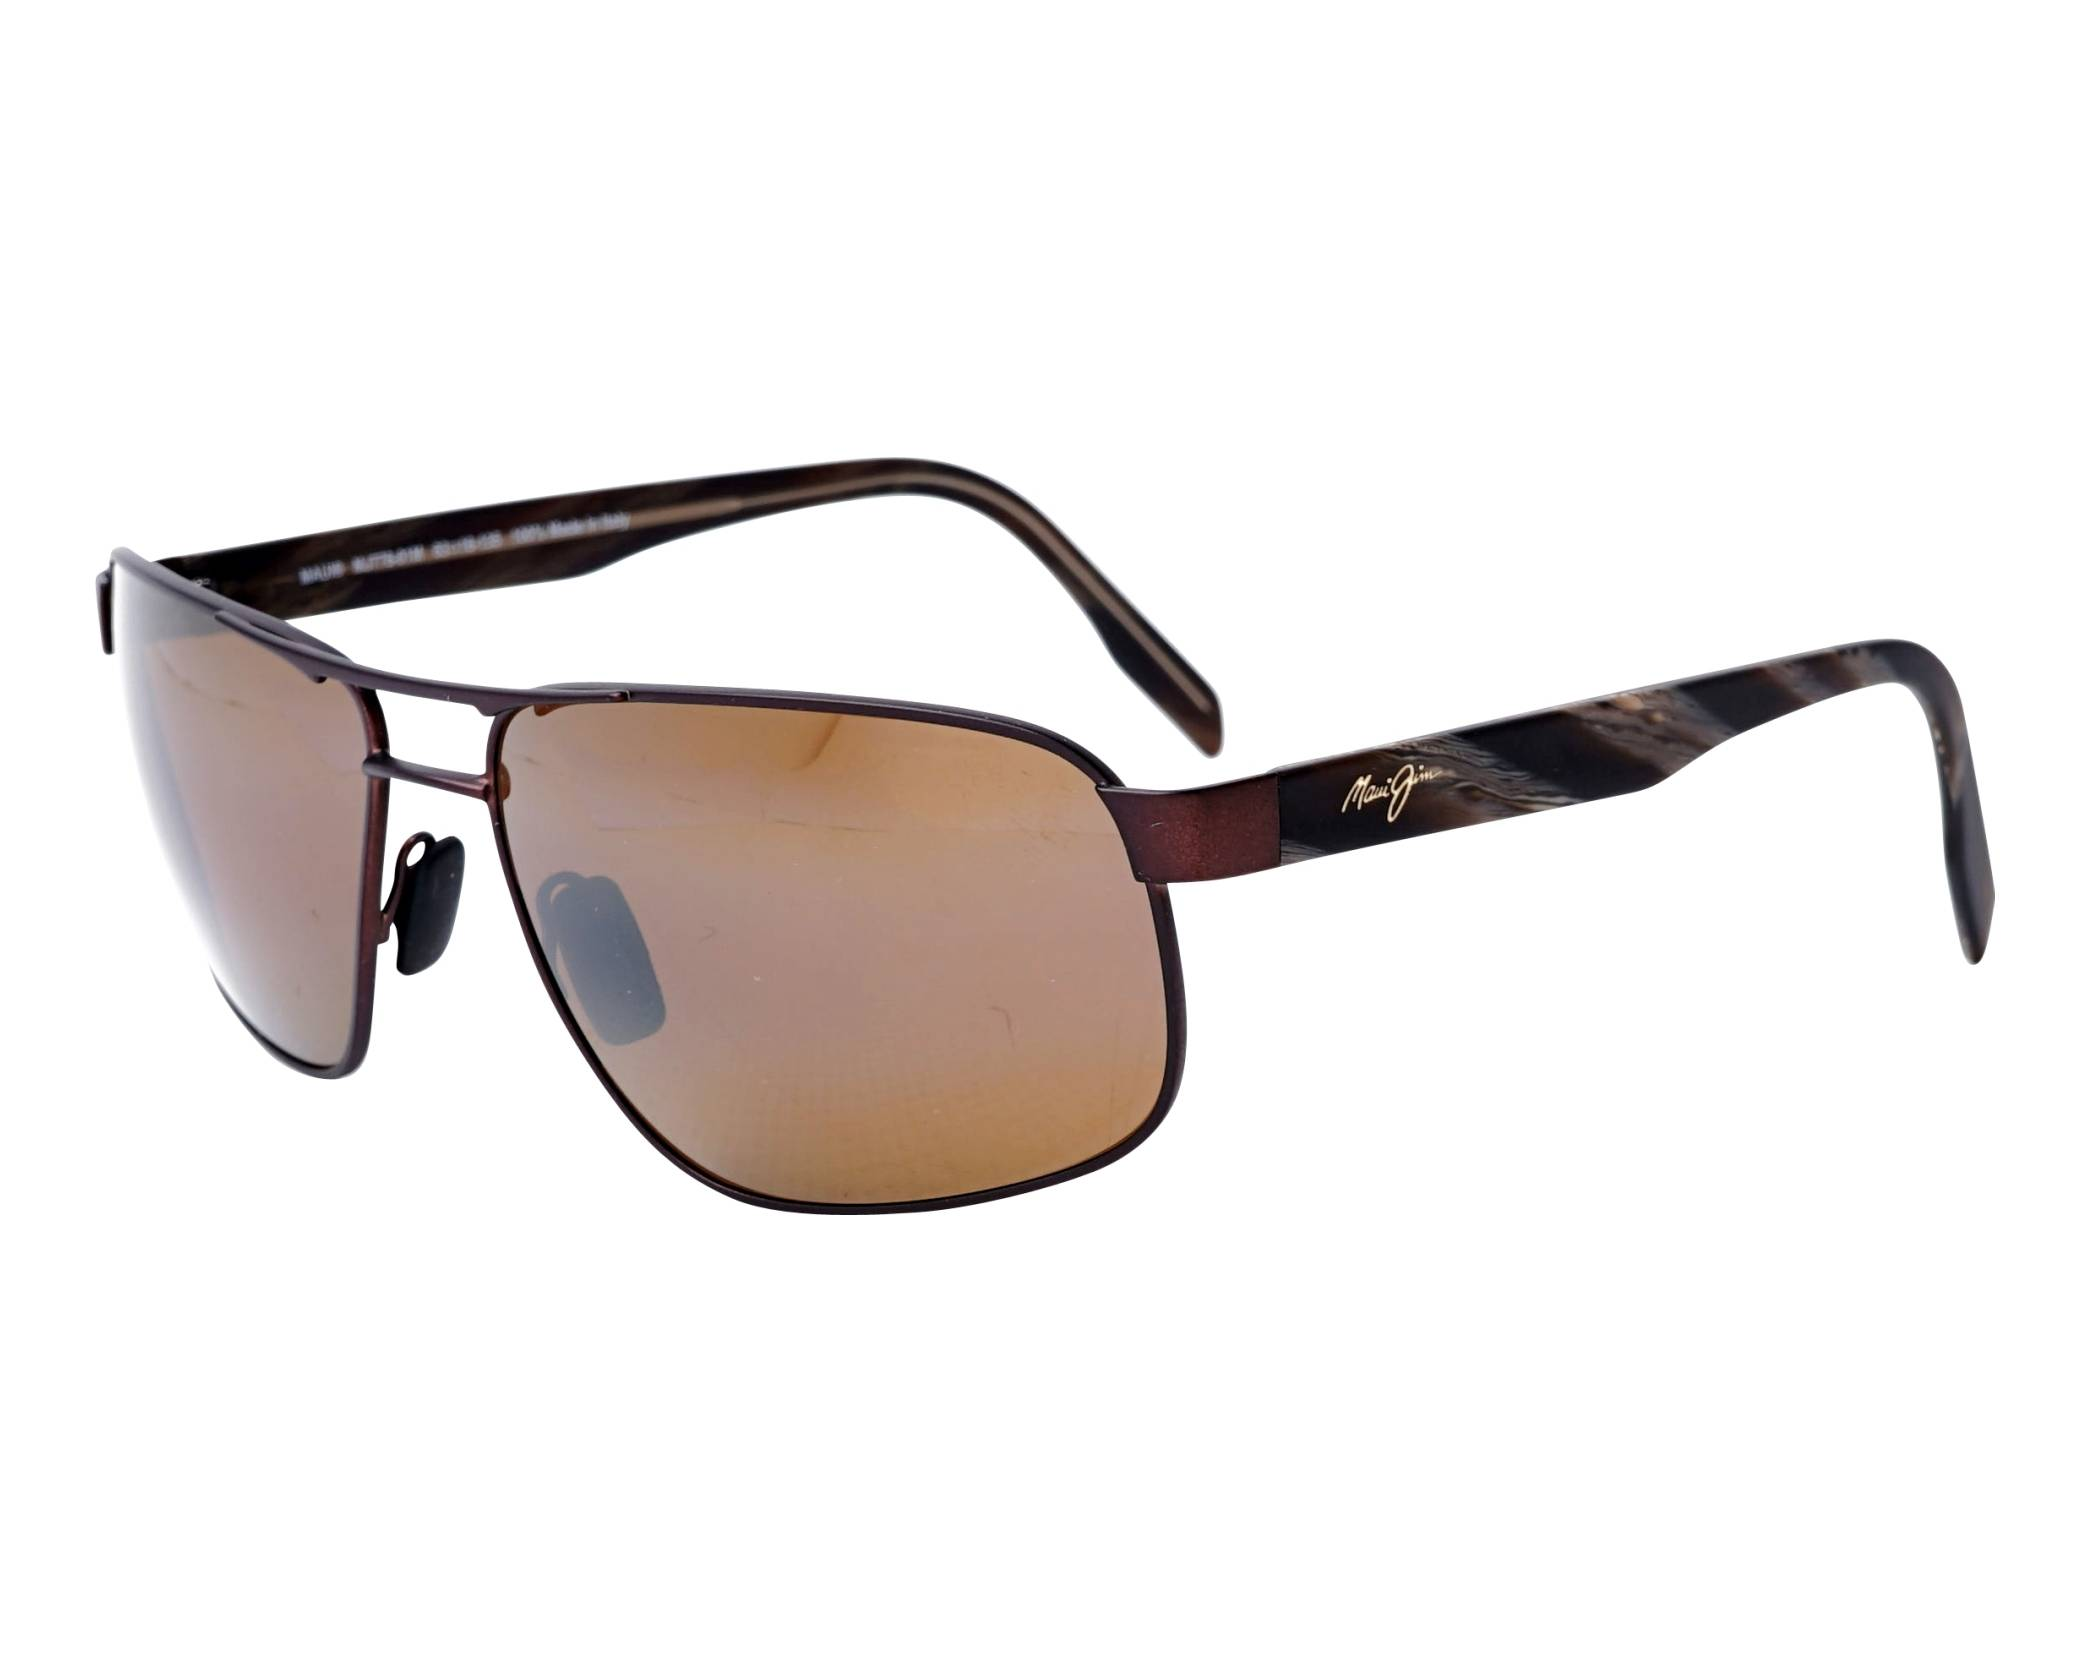 b88f9a3abf Sunglasses Maui Jim WHITEHAVEN H-776-01M 63-16 Brass Brown profile view